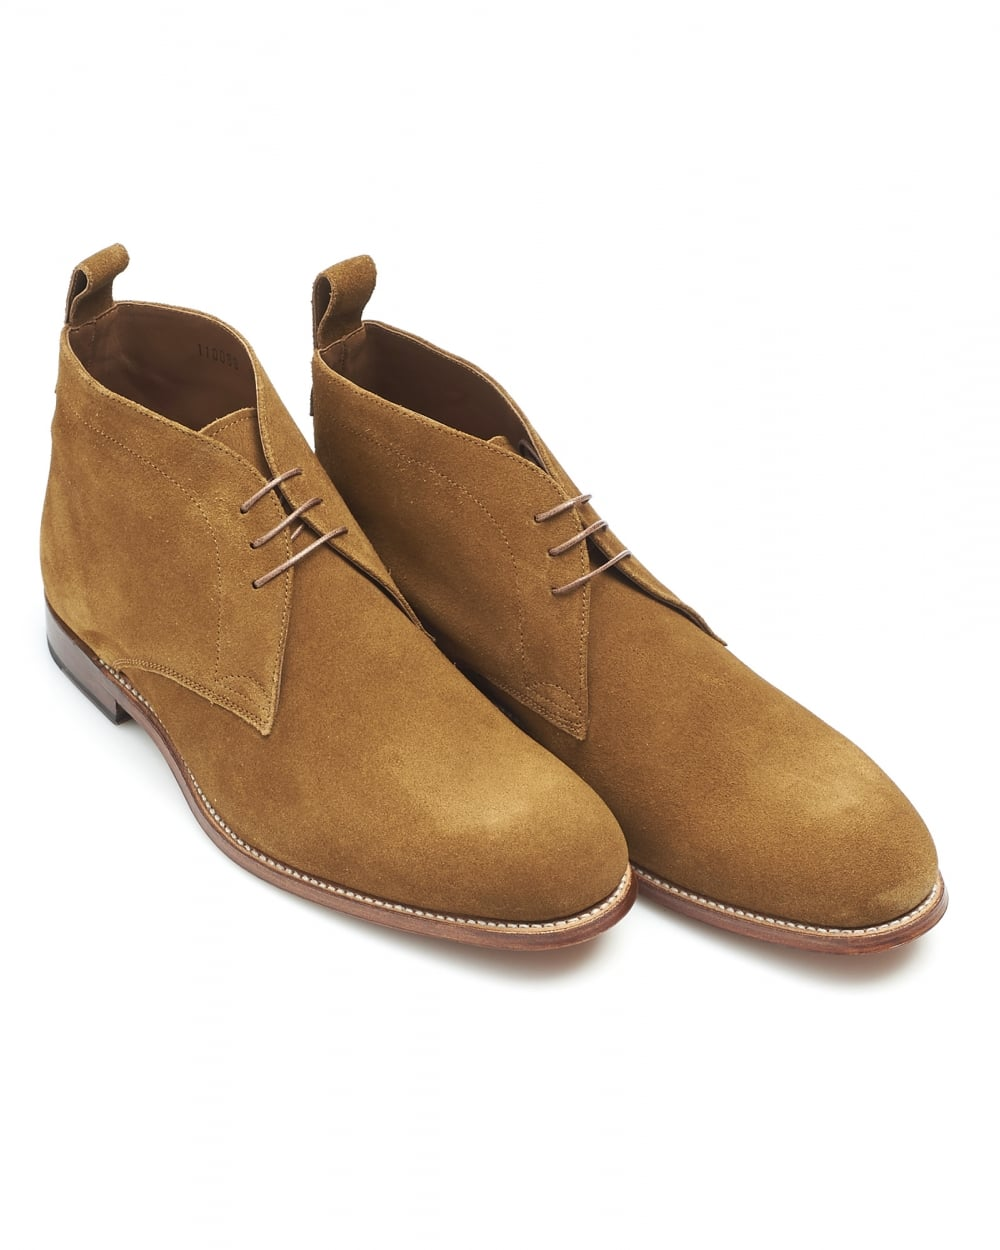 Grenson Shoes Mens Marcus Boot, Snuff Tobacco Suede Chukka Boot